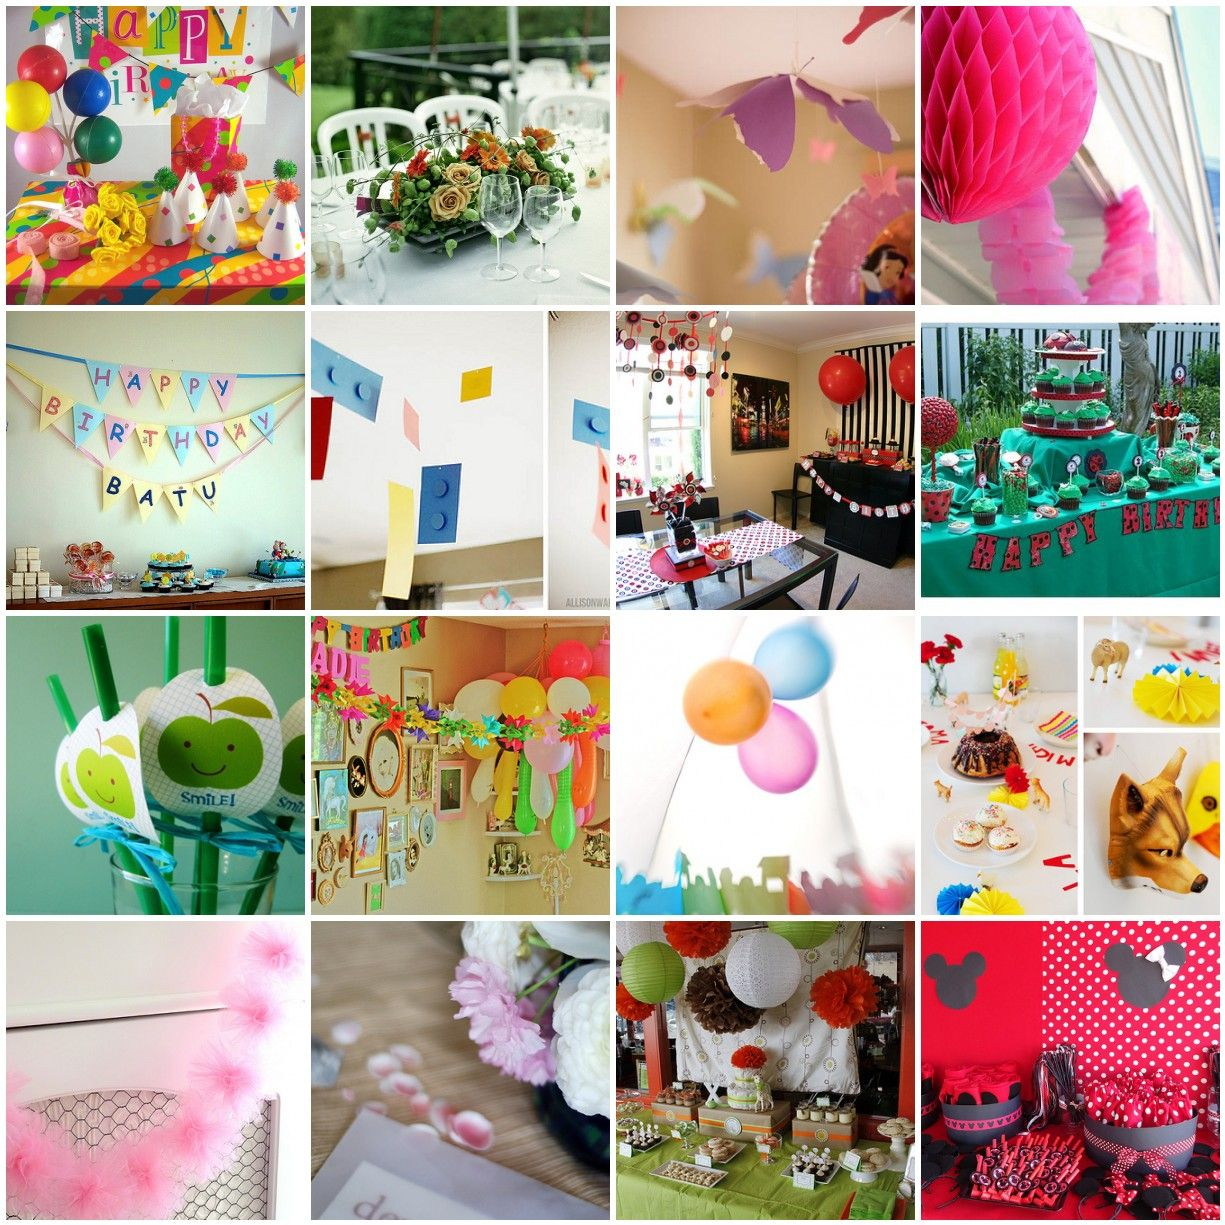 Homemade party decorations decoration ideas party for Home made party decorations